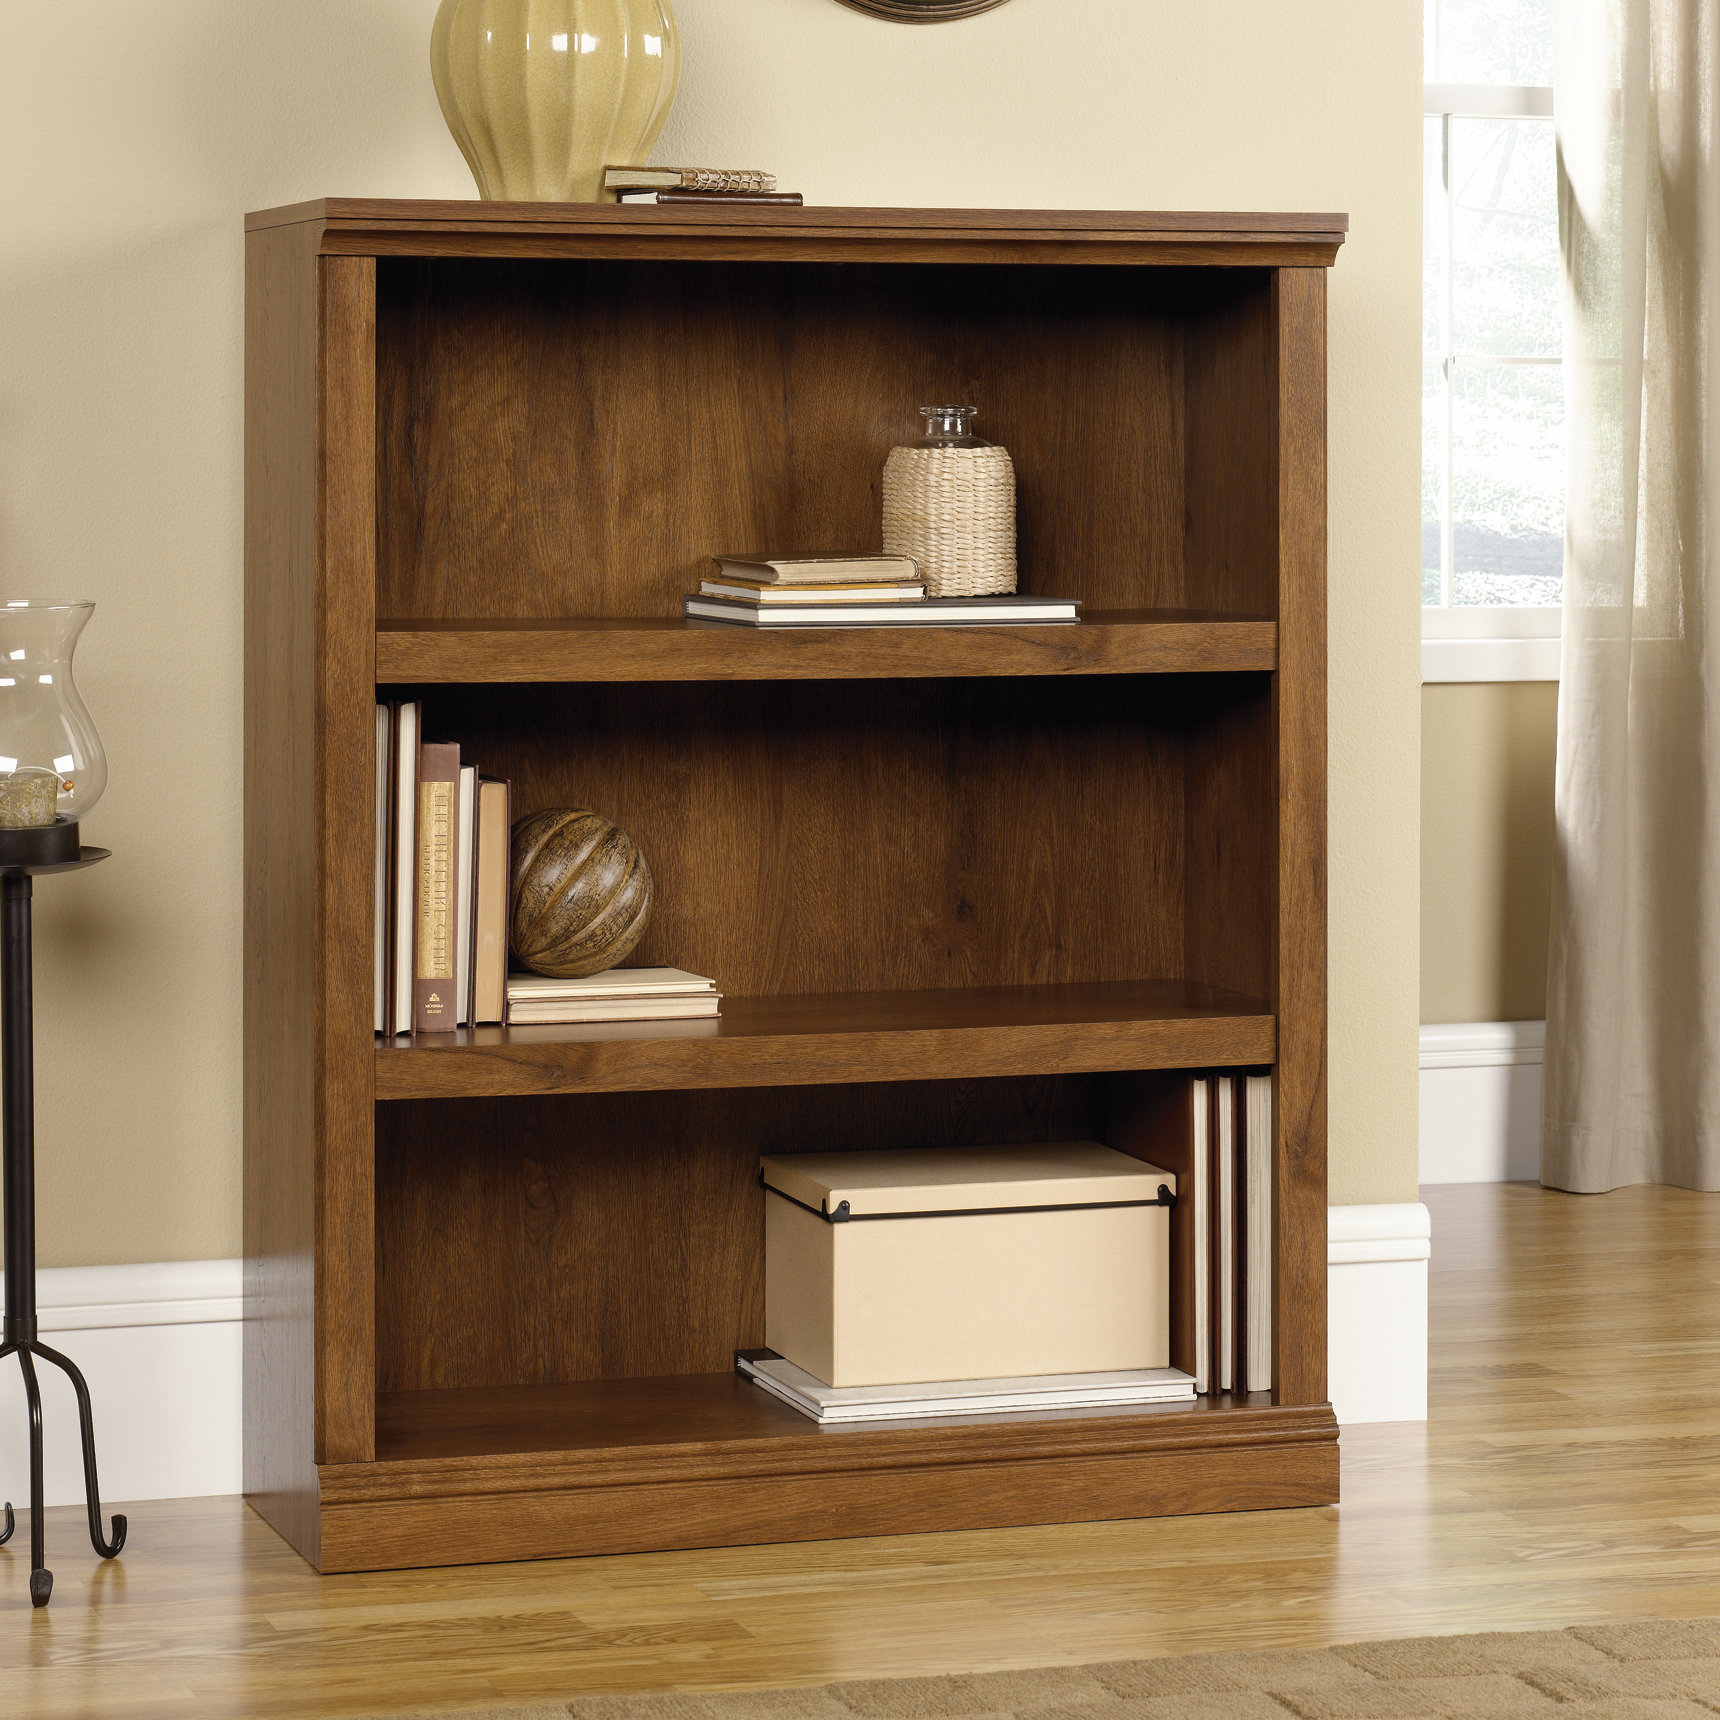 Hartman Standard Bookcase In Well Liked Gianni Standard Bookcases (View 11 of 20)